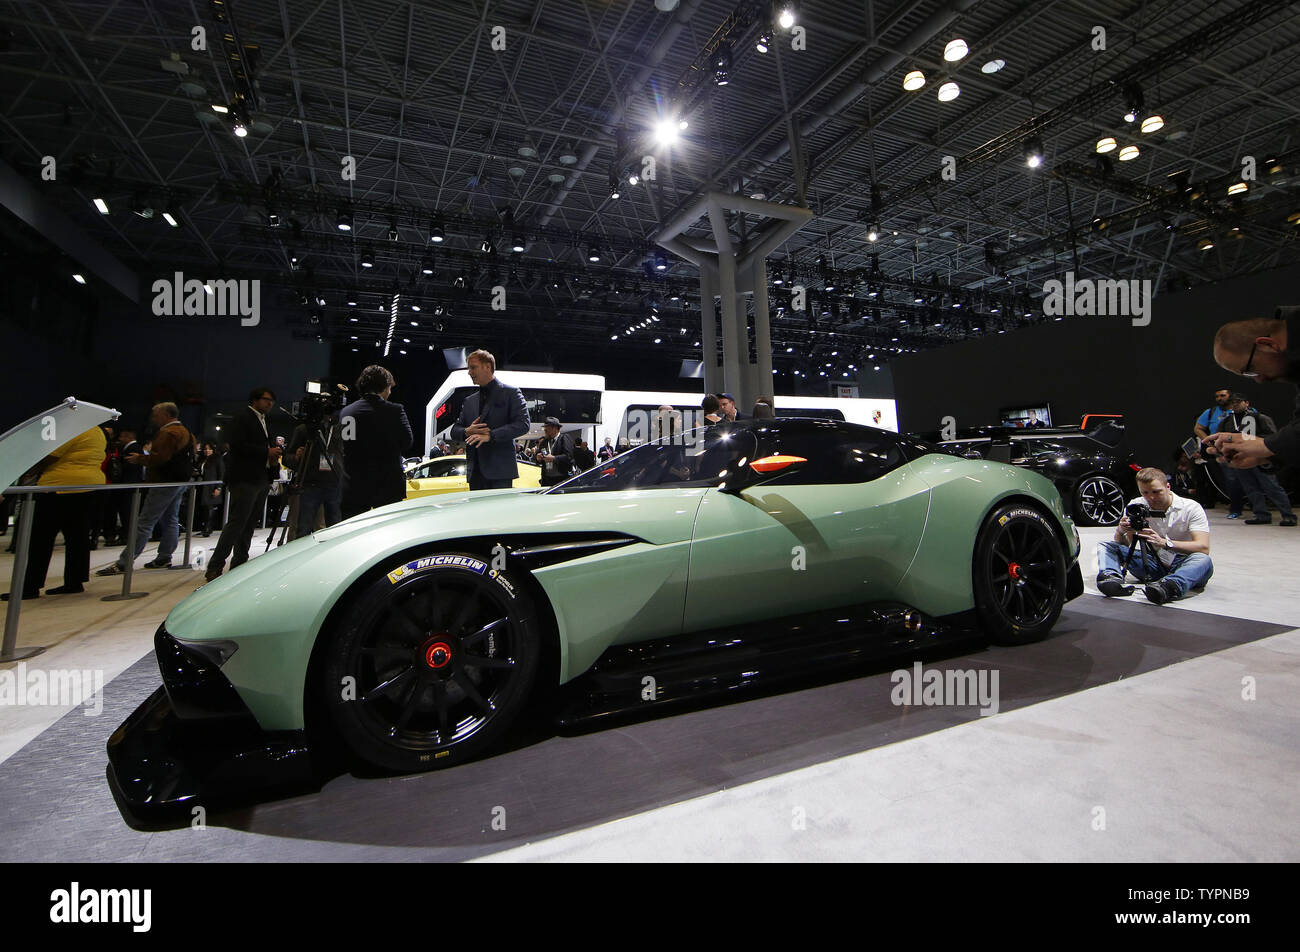 An Aston Martin Vulcan is on display at the 2015 New York International Auto Show in New York City on April 1, 2015. The first New York Auto Show was held in 1900 and it was the first auto show ever held in North America. About 1 million visitors are expected to attend the show.      Photo by John Angelillo/UPI - Stock Image